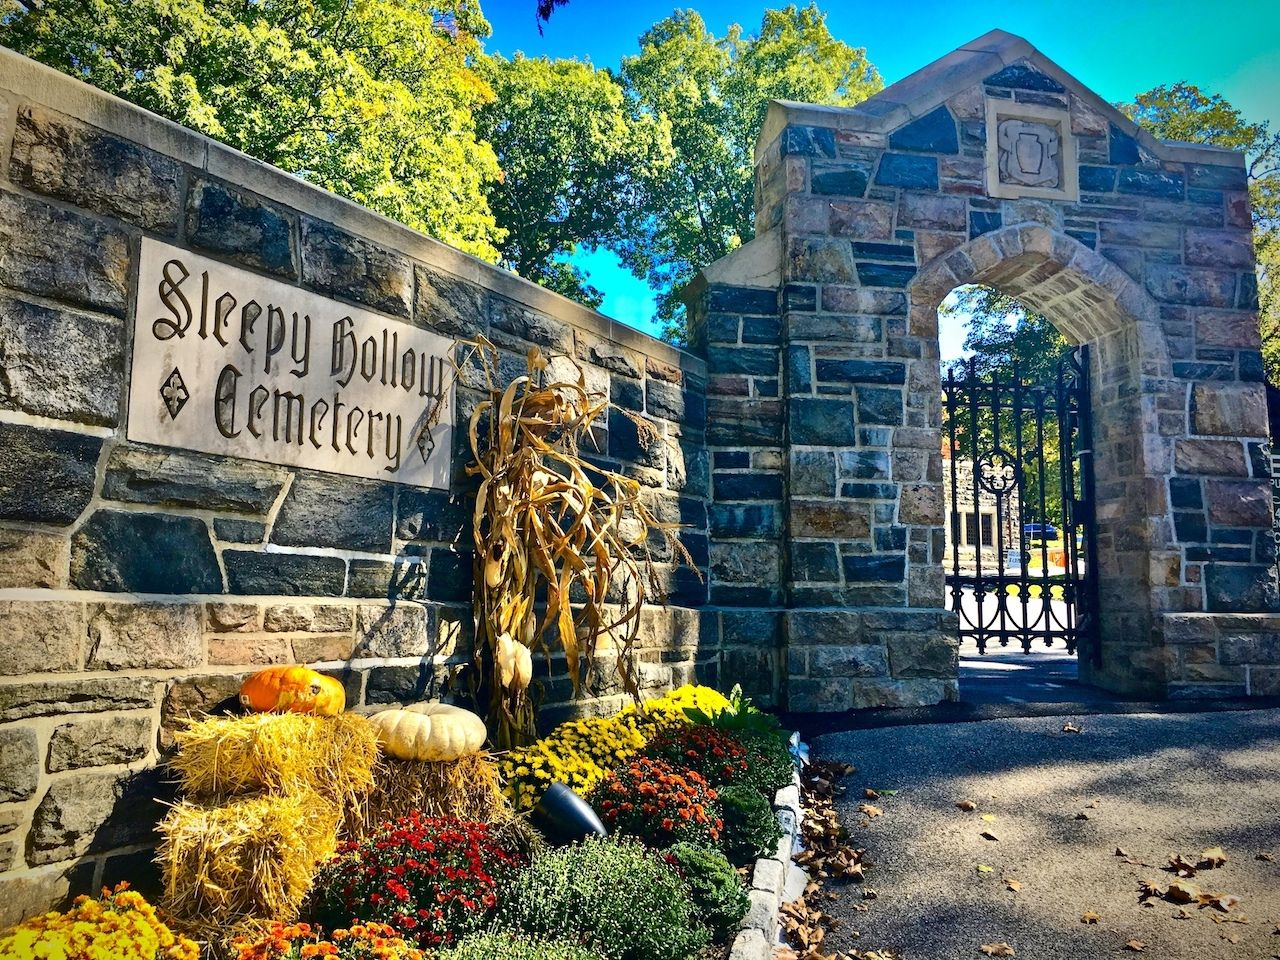 Sleepy Hollow Cemetery is an easy fall weekend getaway from NYC